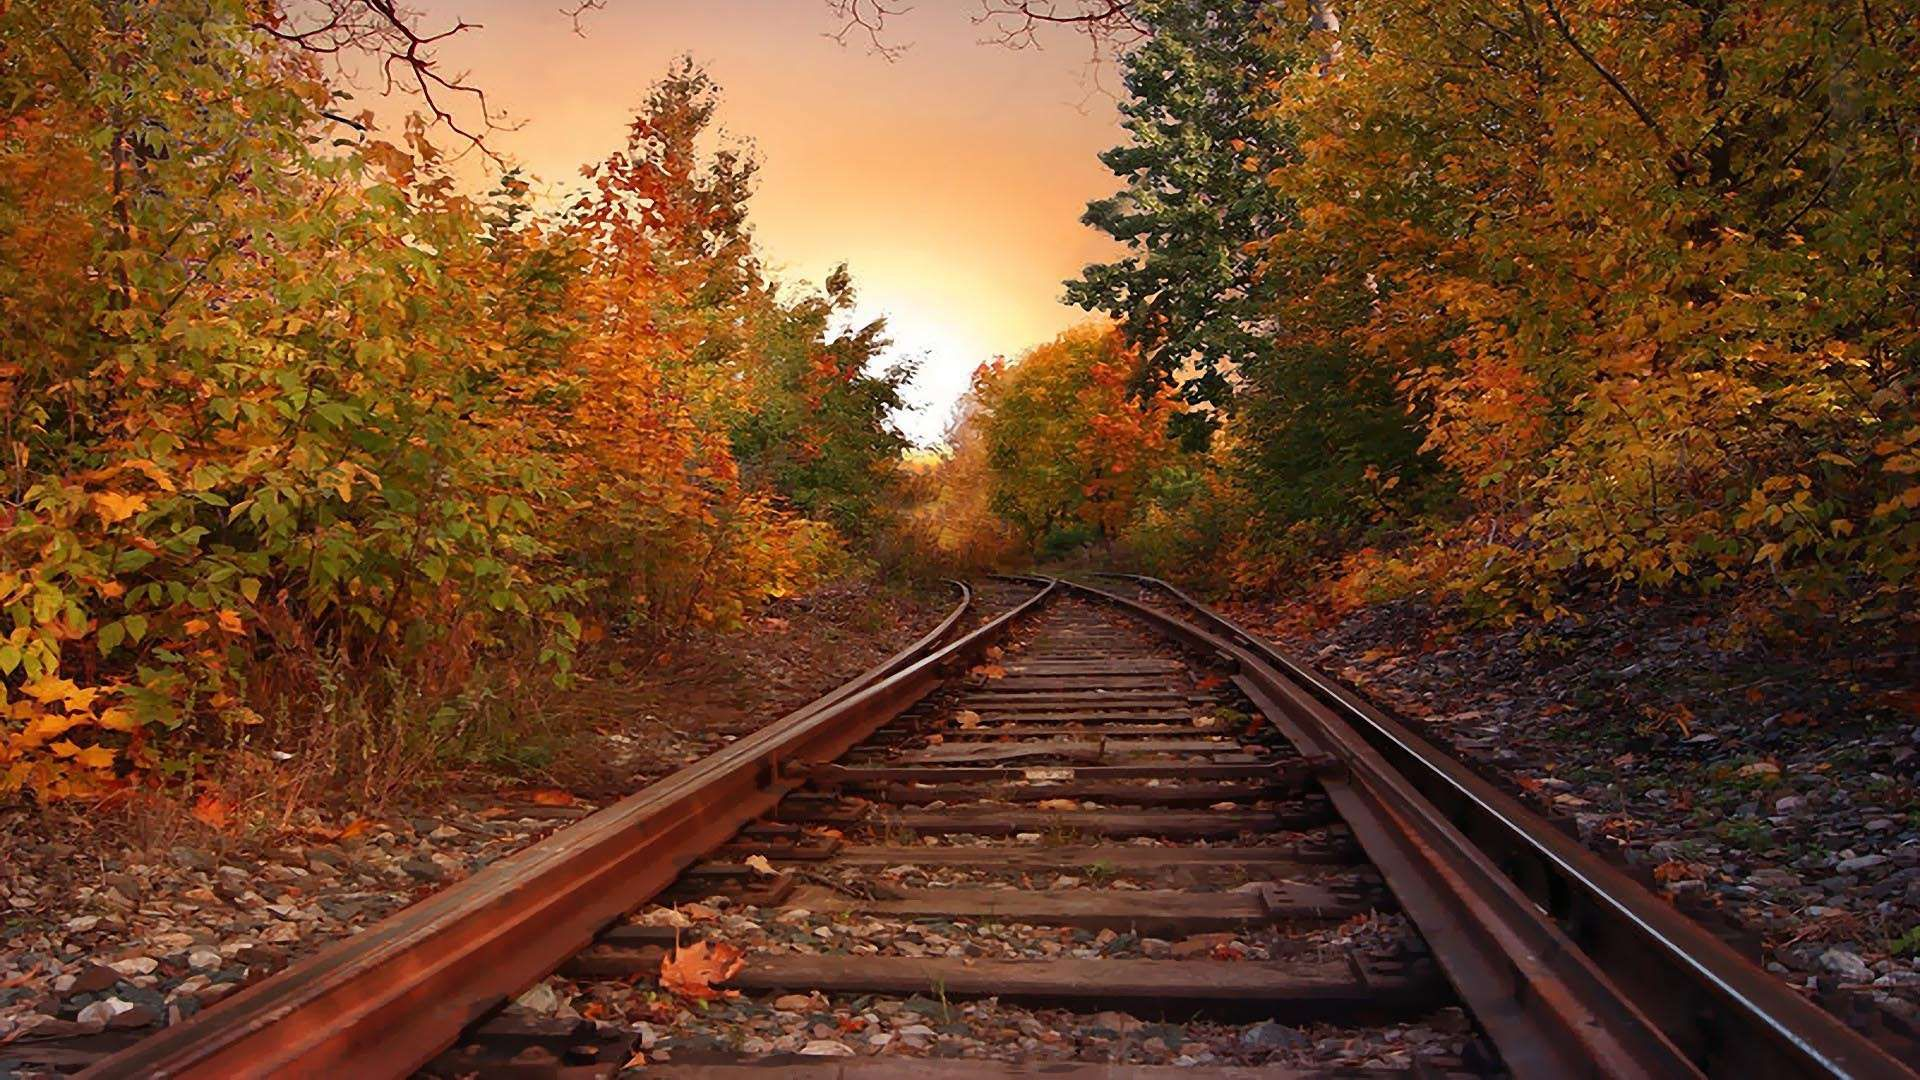 Autumn Rail Hd Wallpaper Fullhdwpp Full Hd Wallpapers 1920x1080 Autumn Scenery Scenery Photography Scenic Photos